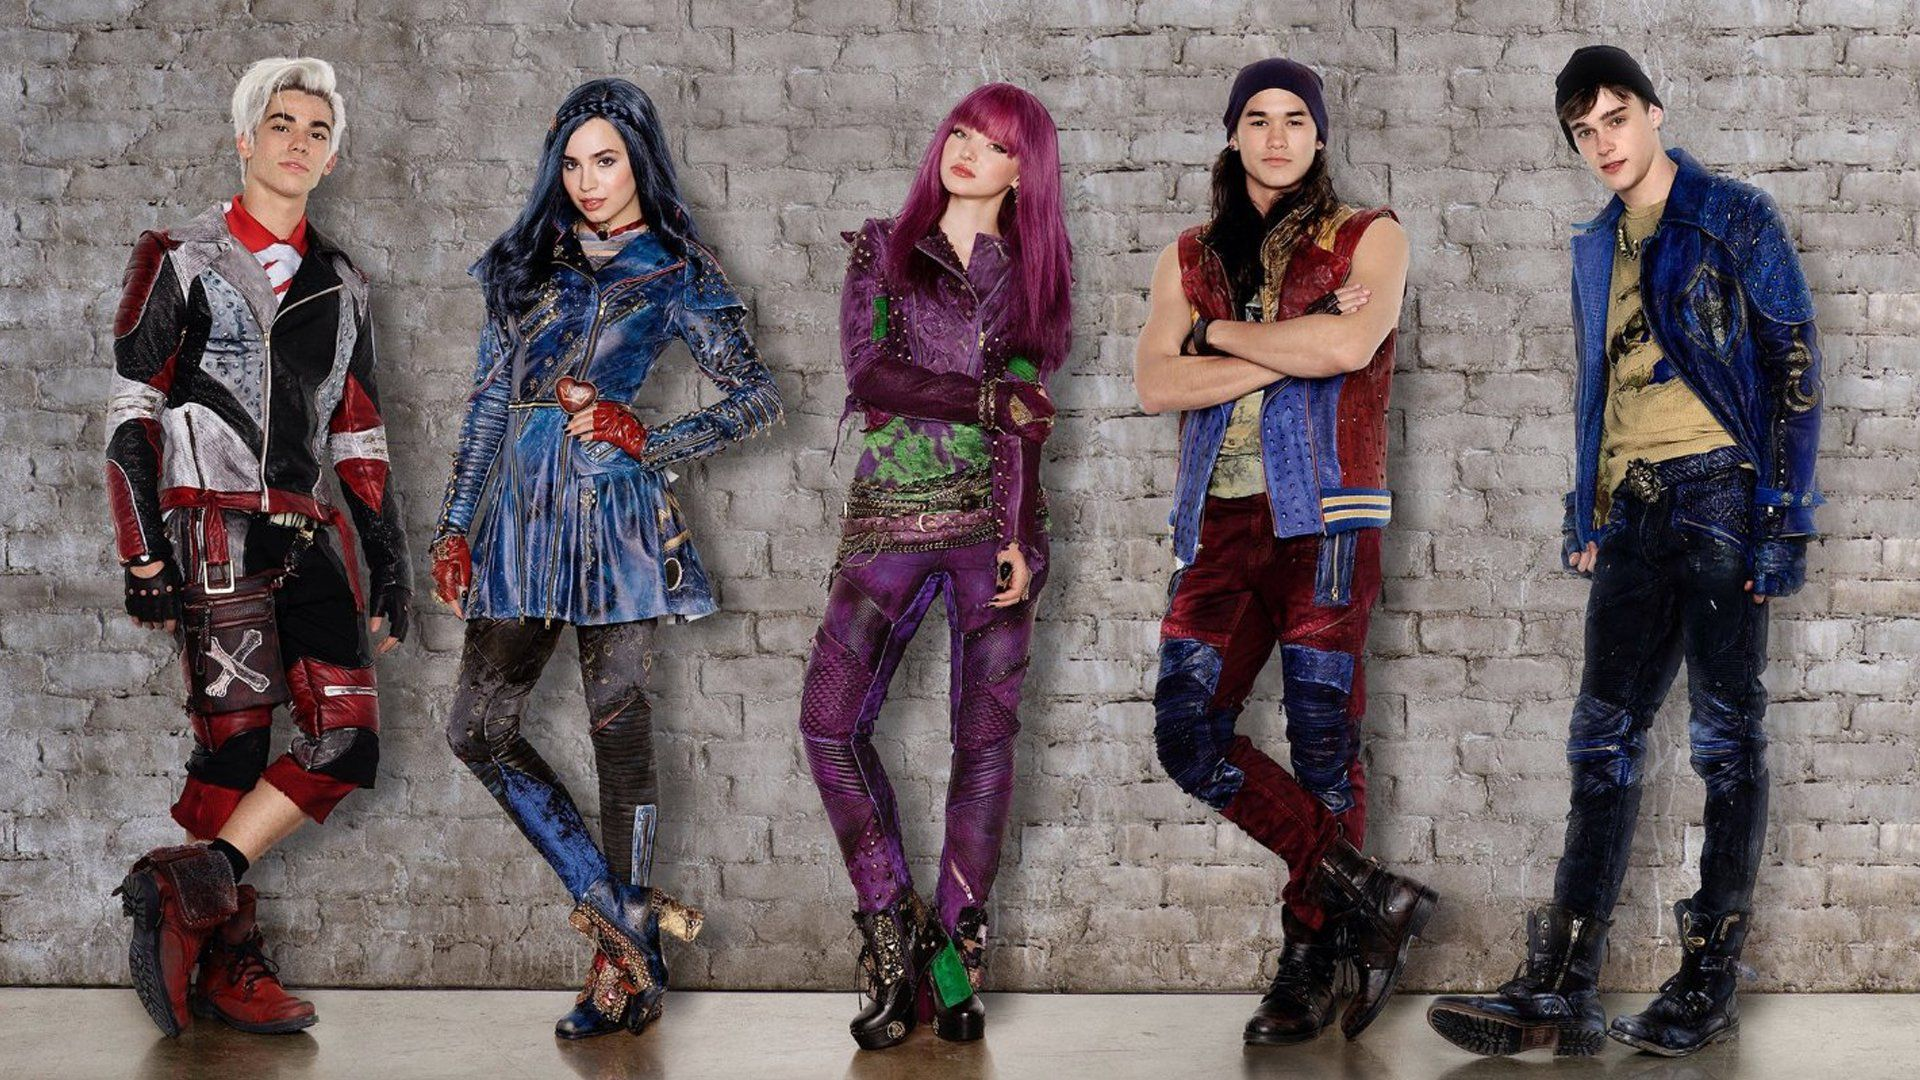 Watch Descendants 2 Full Movies Online Free Hd View More Http Legend Bigmovies10 Com Play Php Id 417320